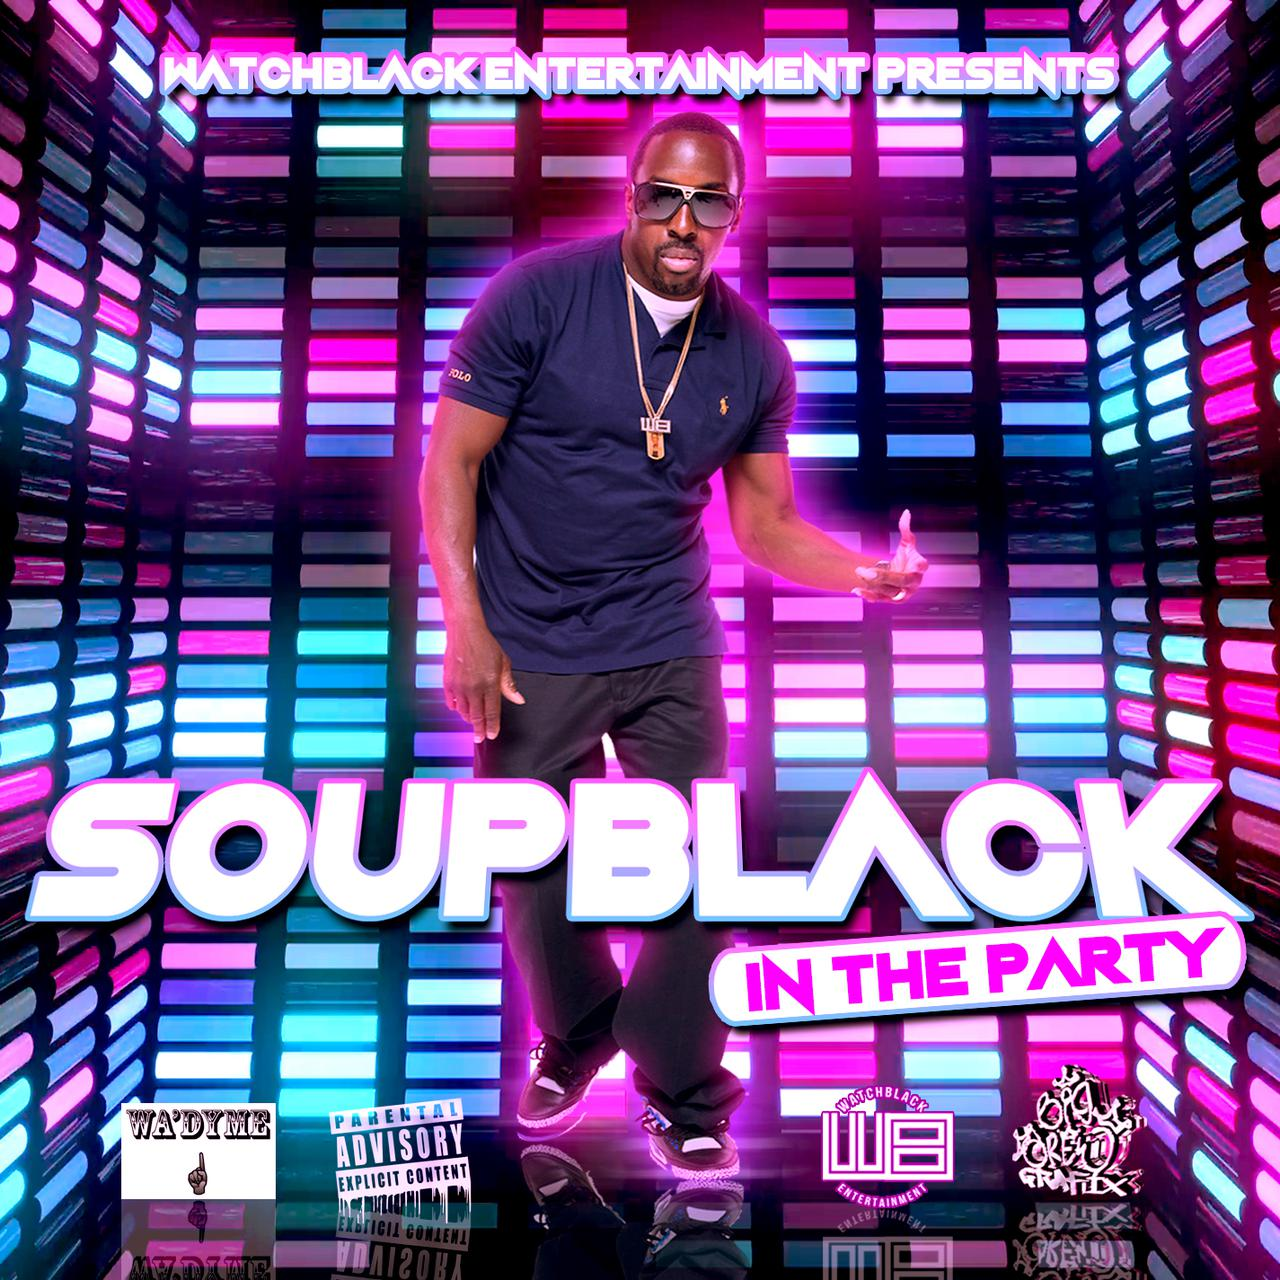 imageGallery/Soup Black In The Party Cover by  Big Drew Grafix 031418.JPG